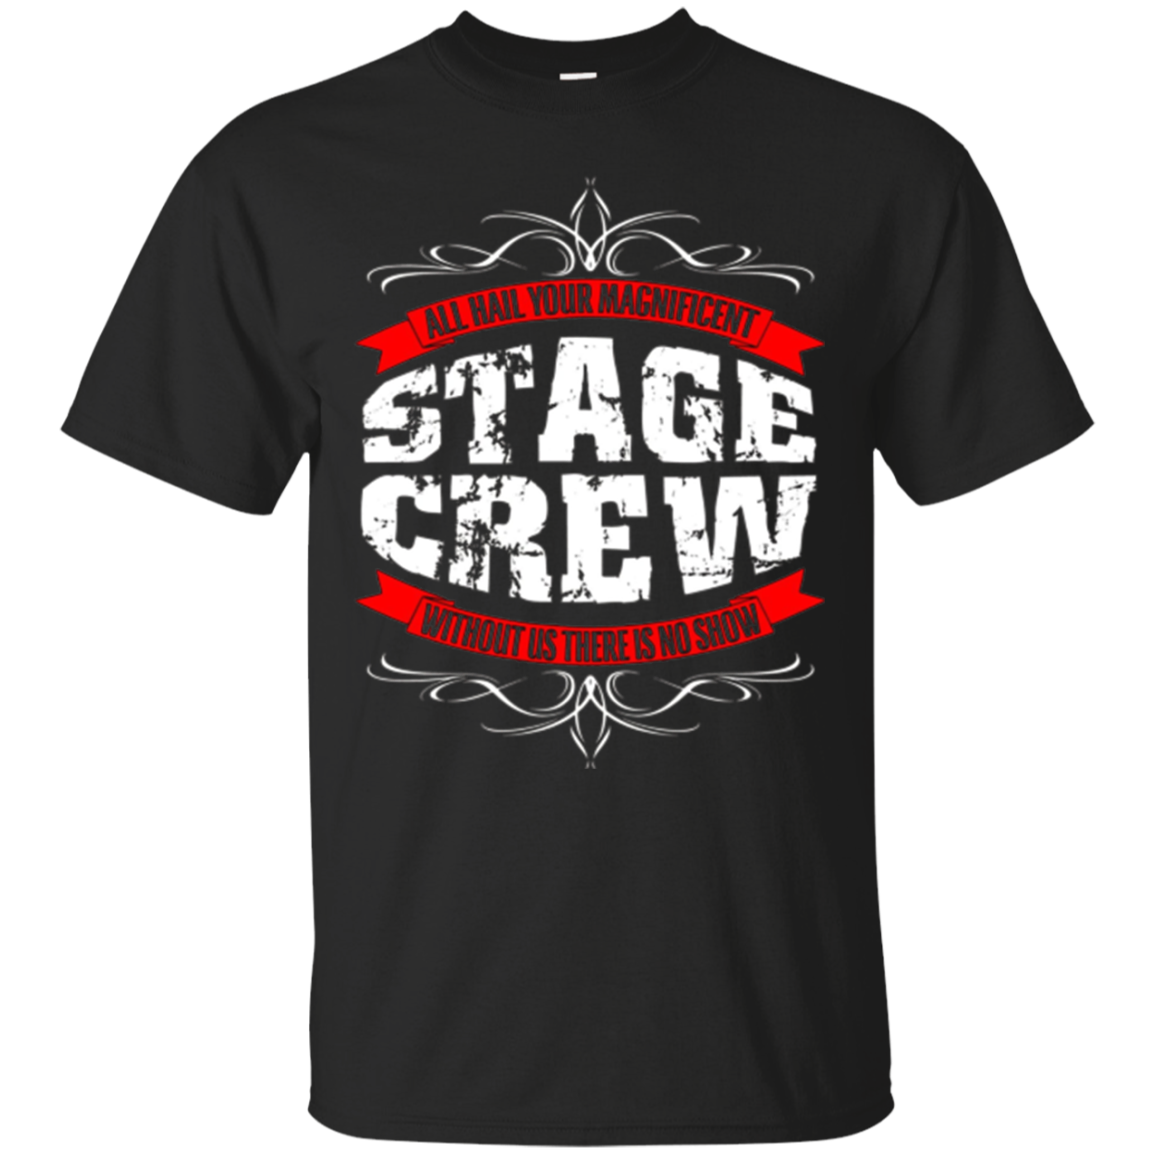 All Hail The Magnificent Stage Crew Funny Actor T-shirt